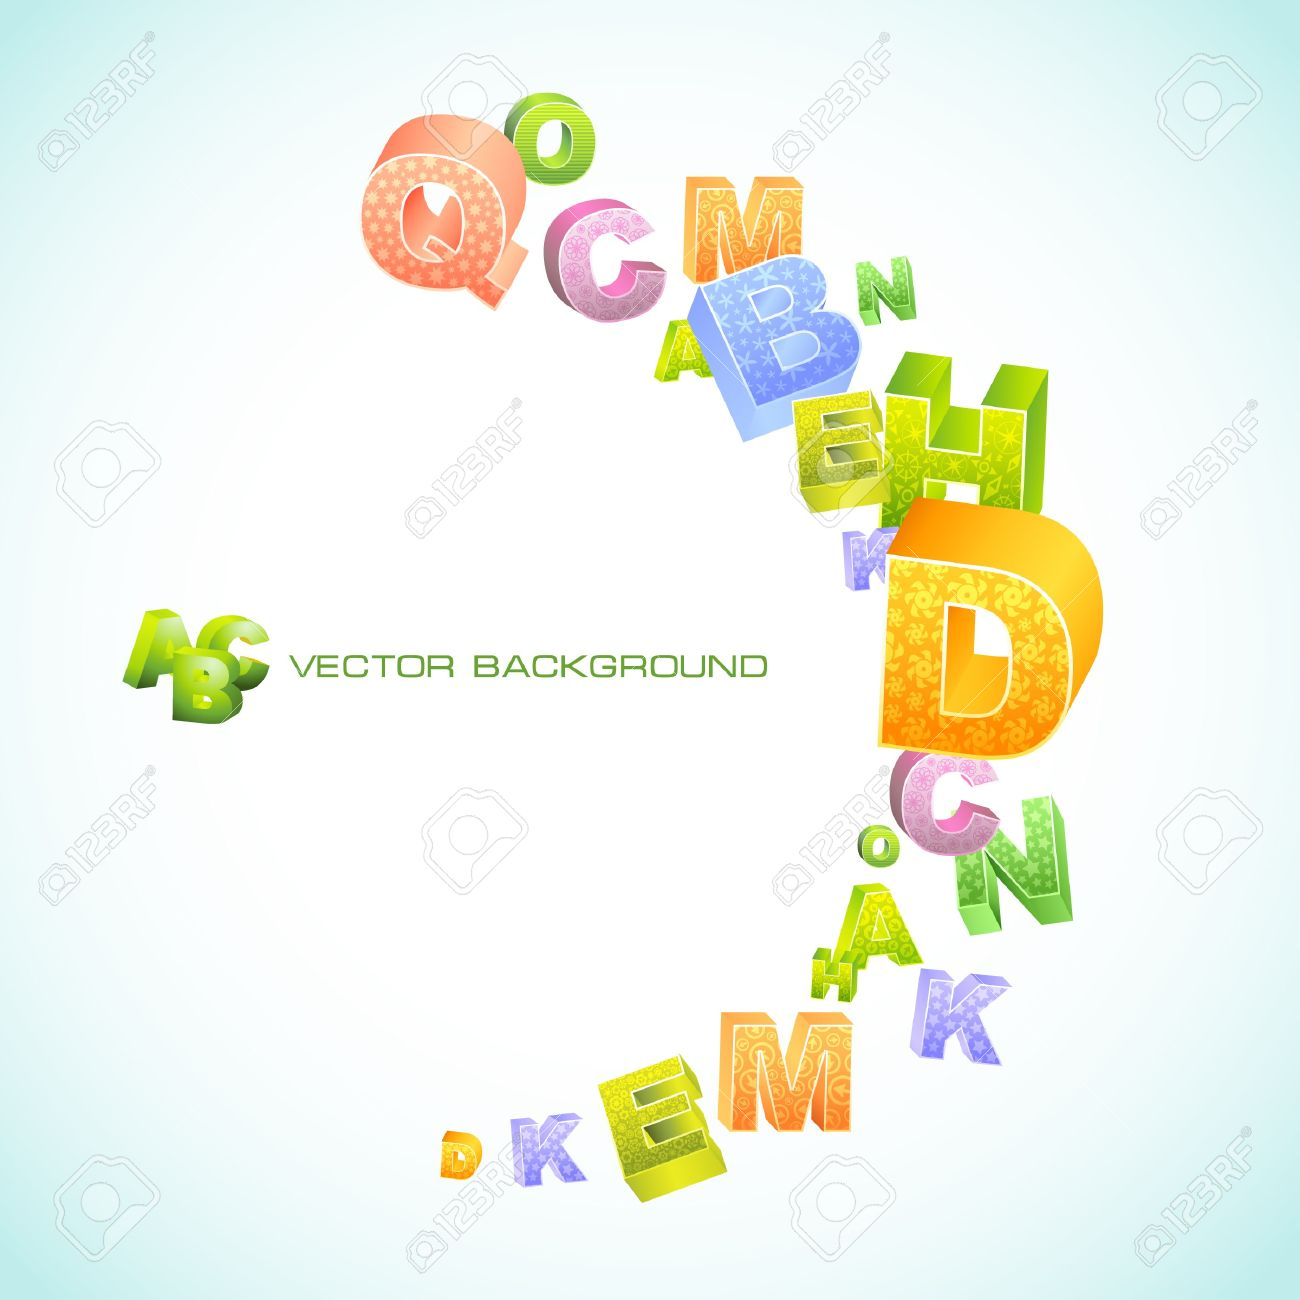 Abstract background with letters. Stock Vector - 7800685